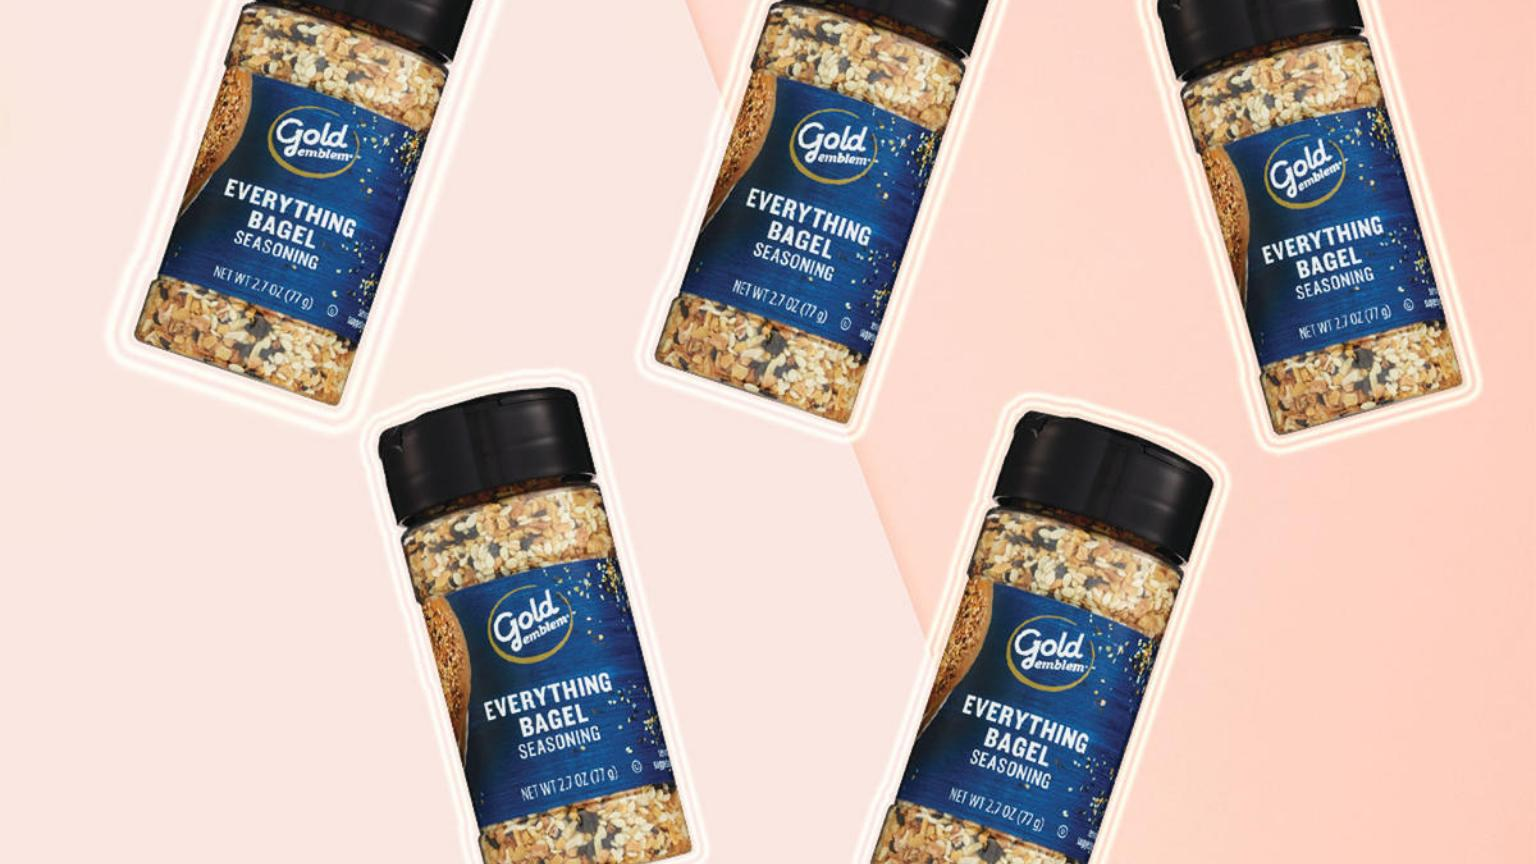 New Healthy Snacks From CVS - Cooking Light